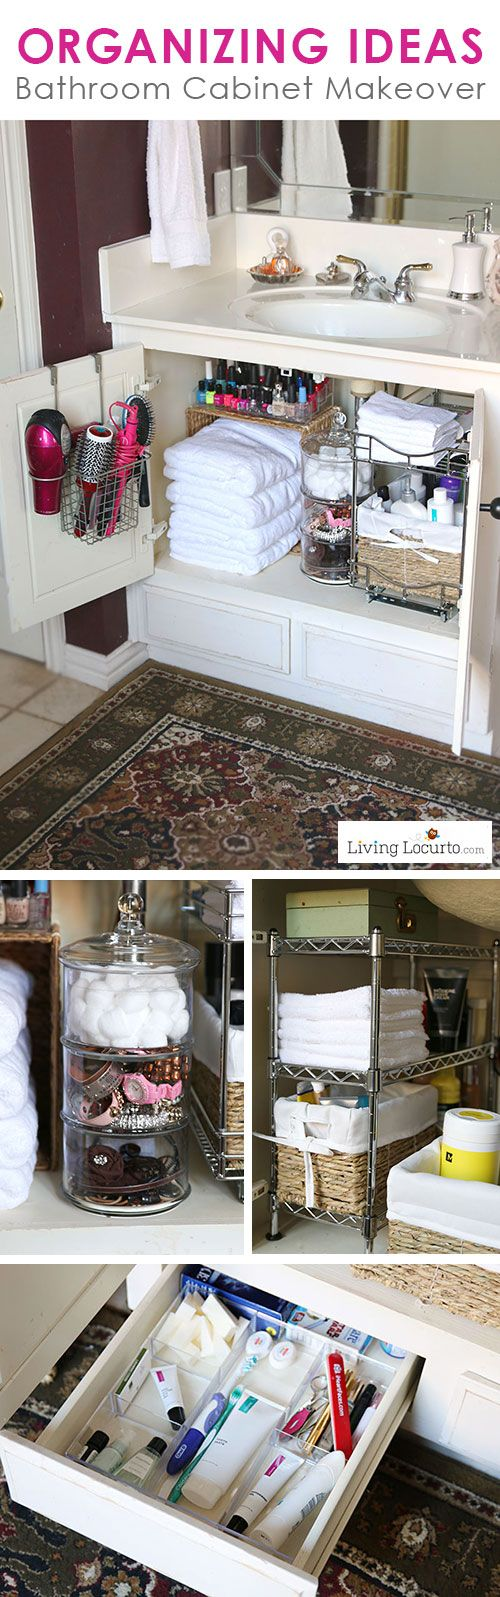 Great Organizing Ideas For Your Bathroom! Cabinet Organization Makeover    Before And After Photos.